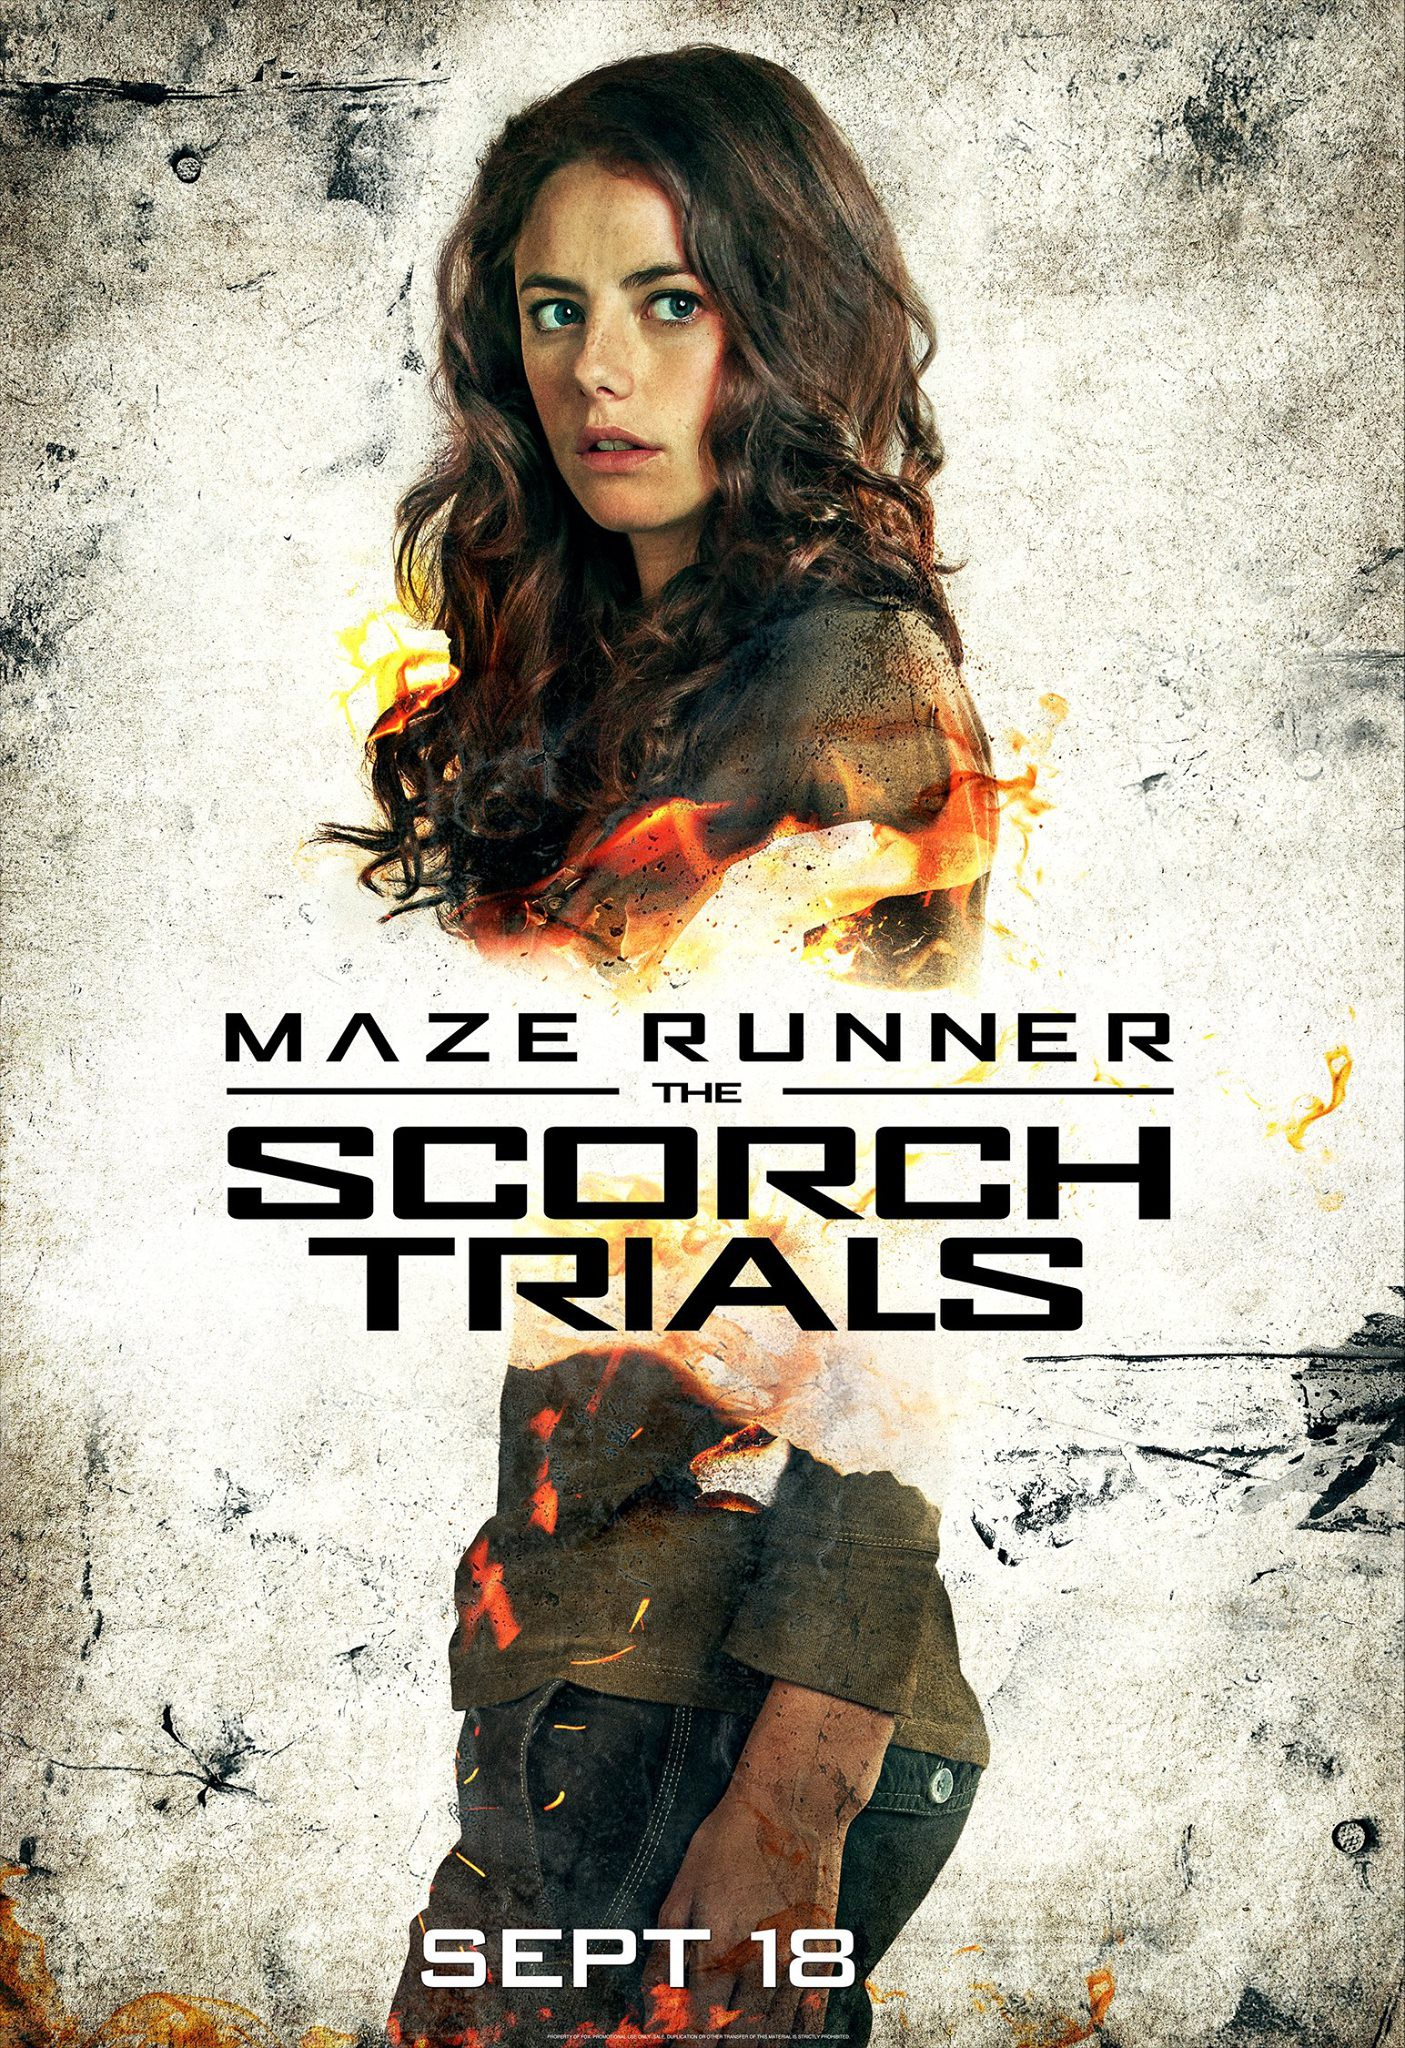 Maze Runner The Scorch Trials-24Julho2015-01